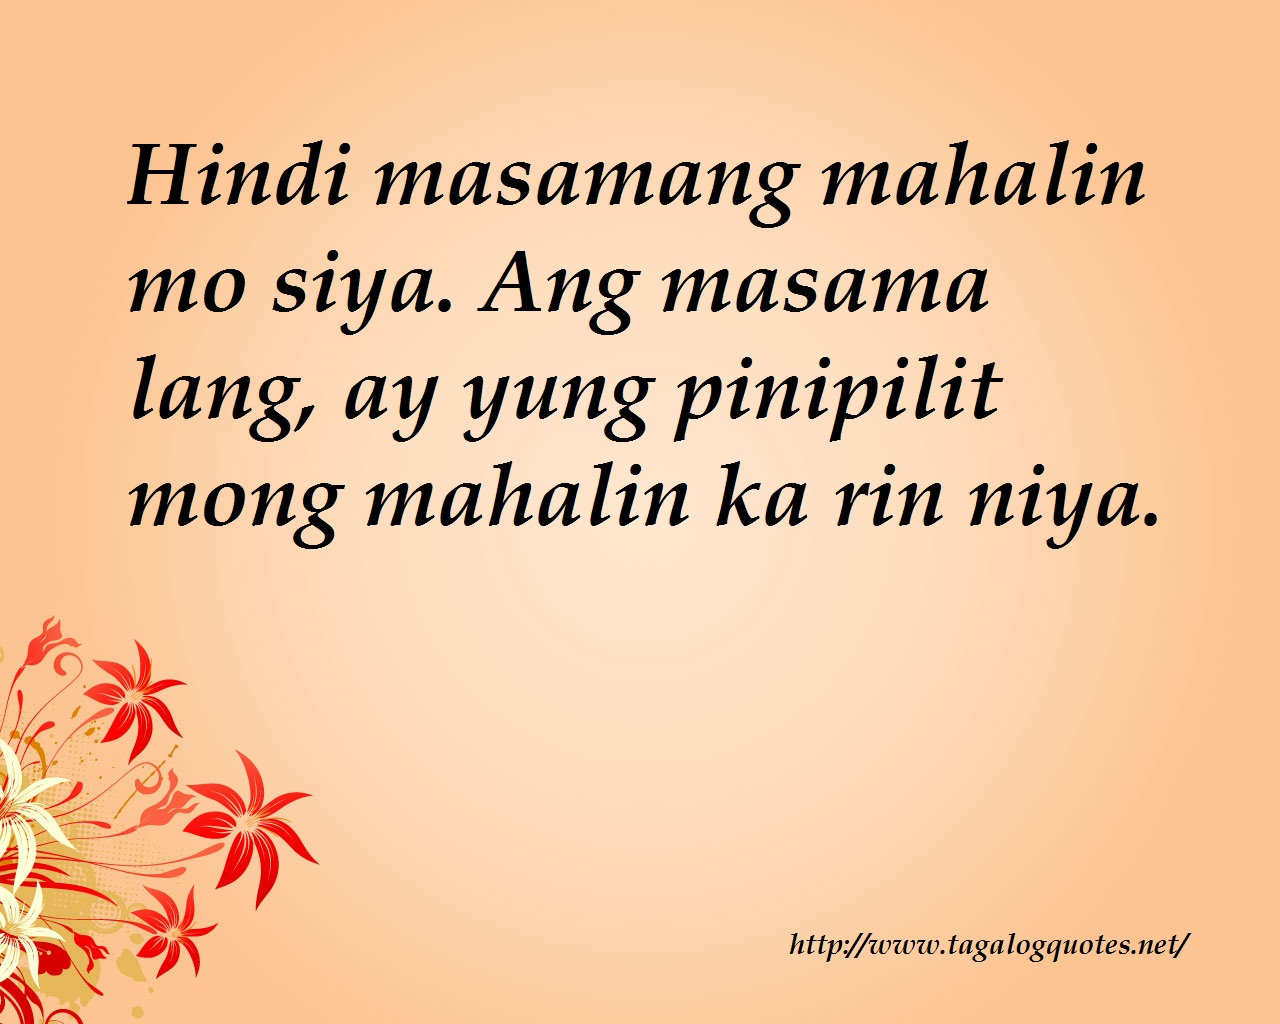 Simple Quotes About Friendship Tagalog : Tagalog love quotes images